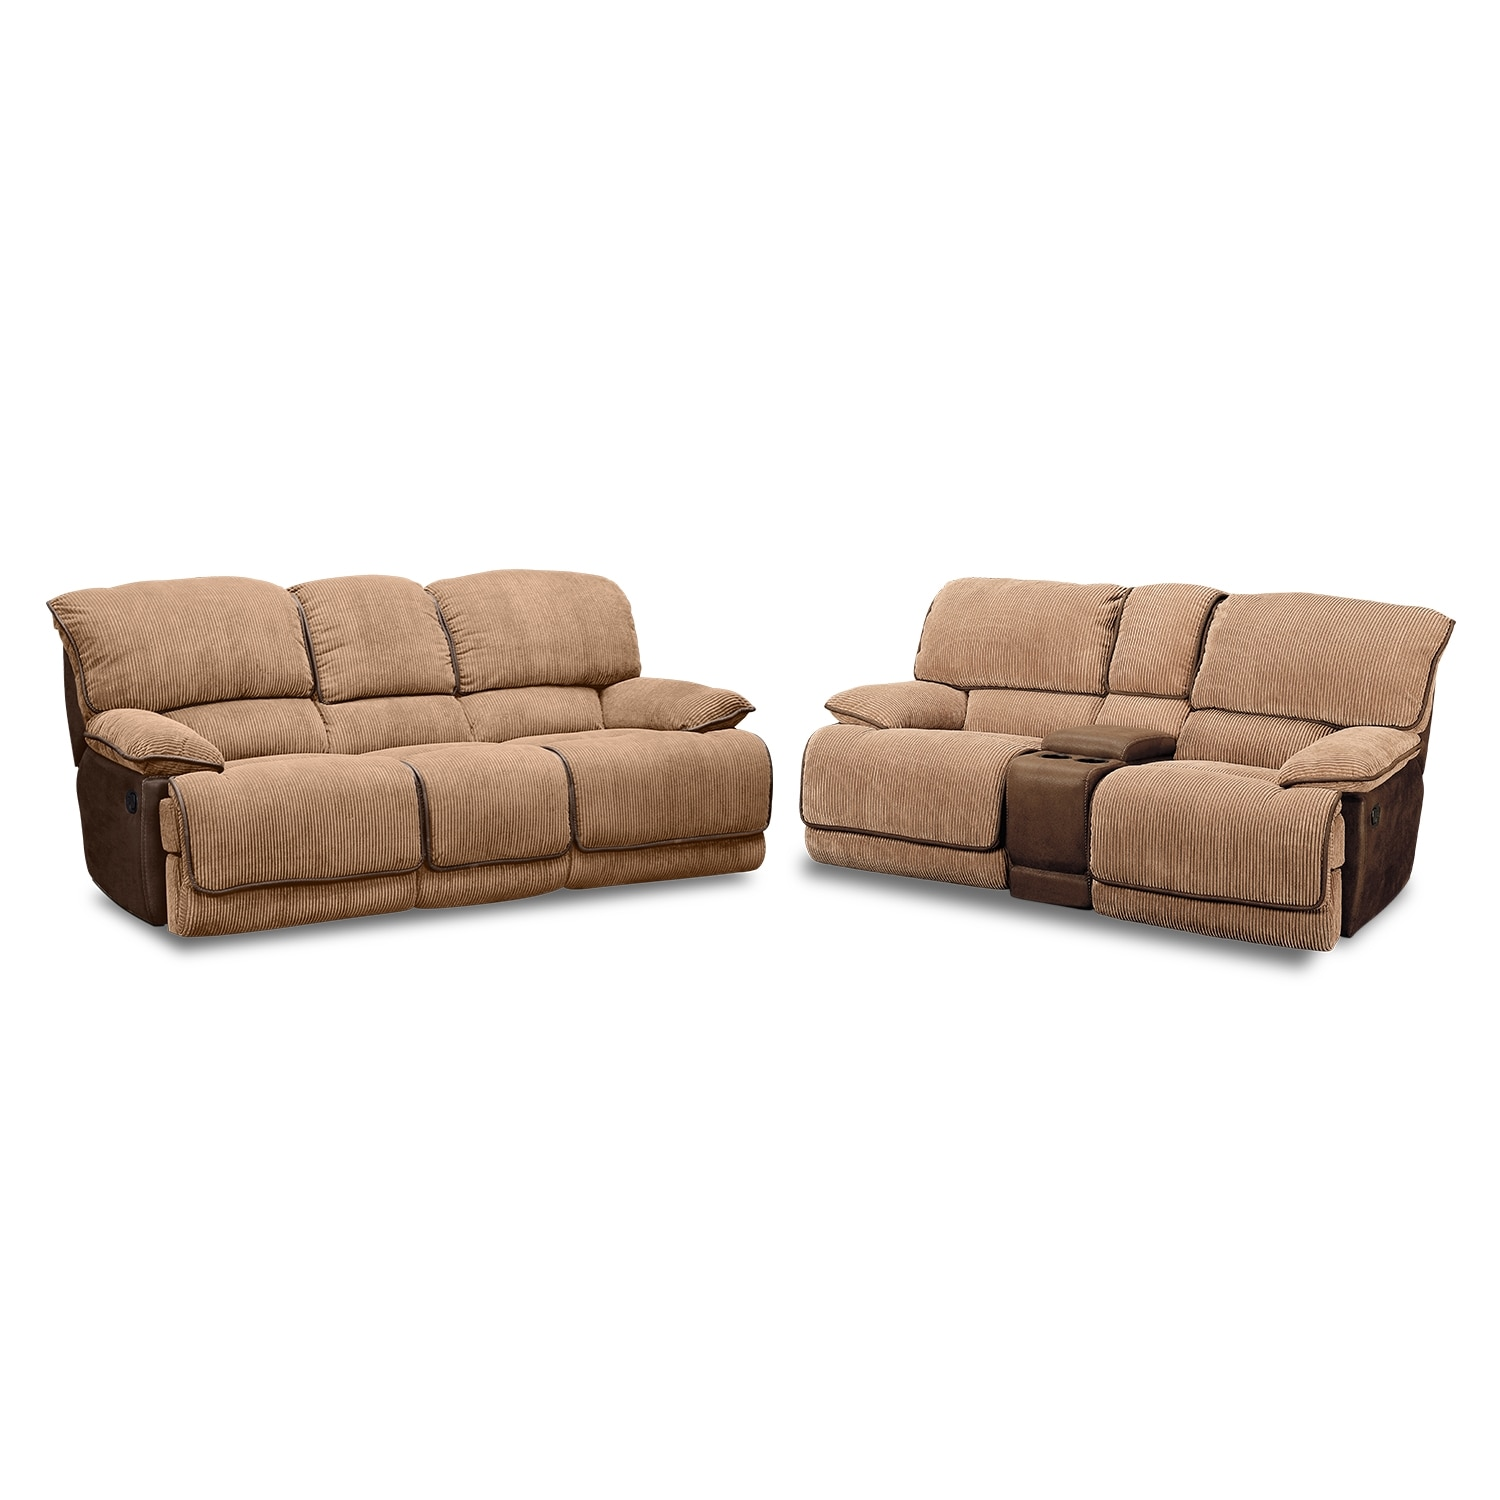 Living Room Furniture - Laguna Reclining Sofa and Gliding Reclining Loveseat Set - Camel